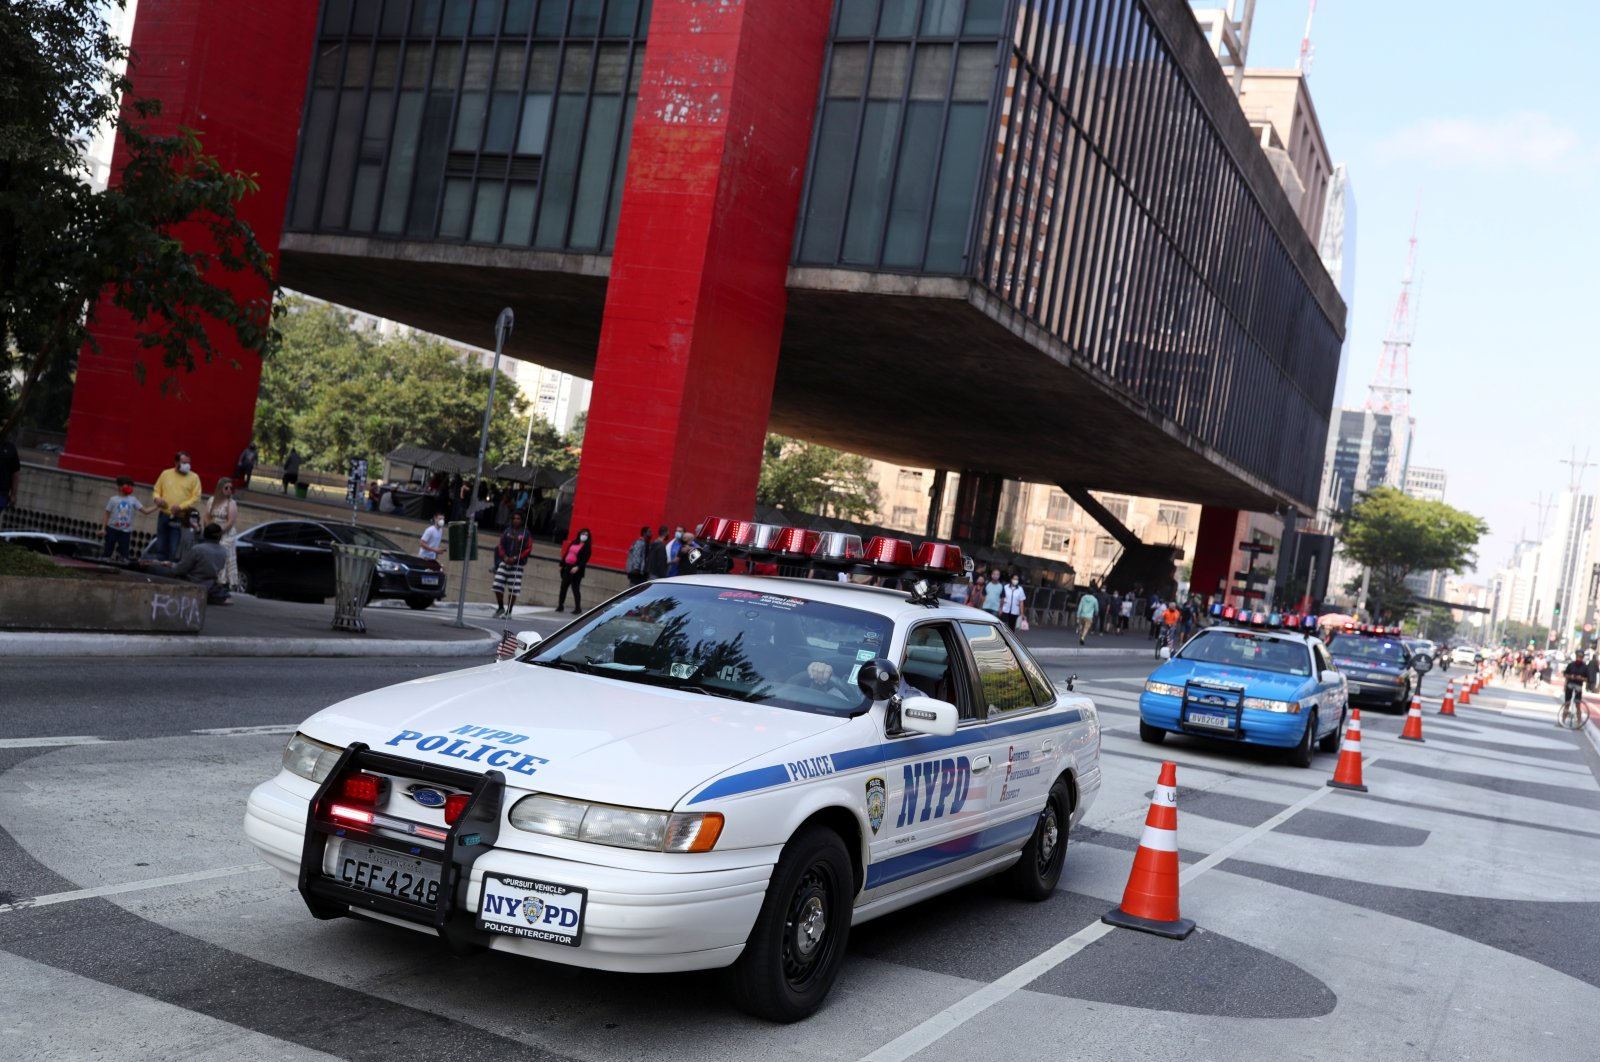 Brazilian fans of the New York Police Department (NYPD), whose hobby is to recreate the NYPD's cars and motorbikes, drive past Sao Paulo Museum of Art (MASP) in Sao Paulo, Brazil, May 16, 2021. (Reuters Photo)